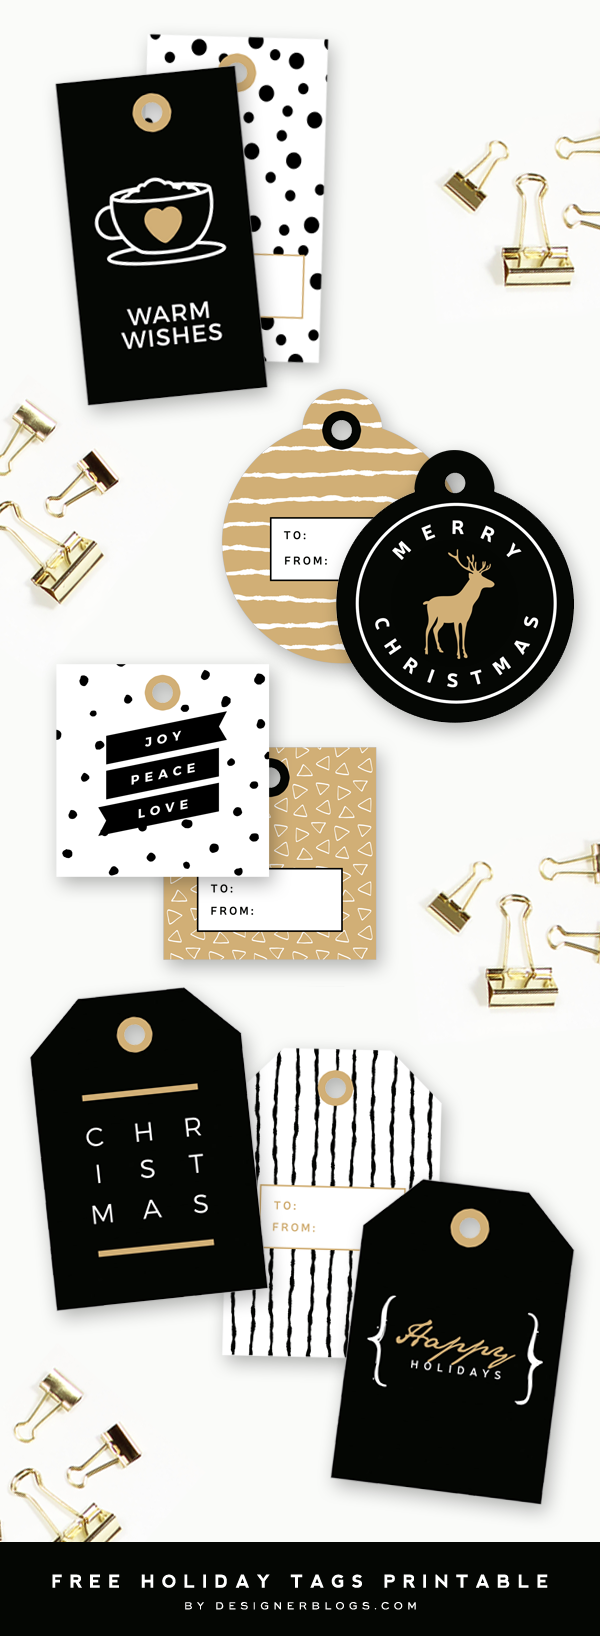 Free Printable Holiday Tags - 9 modern designs in black, white and gold colors.